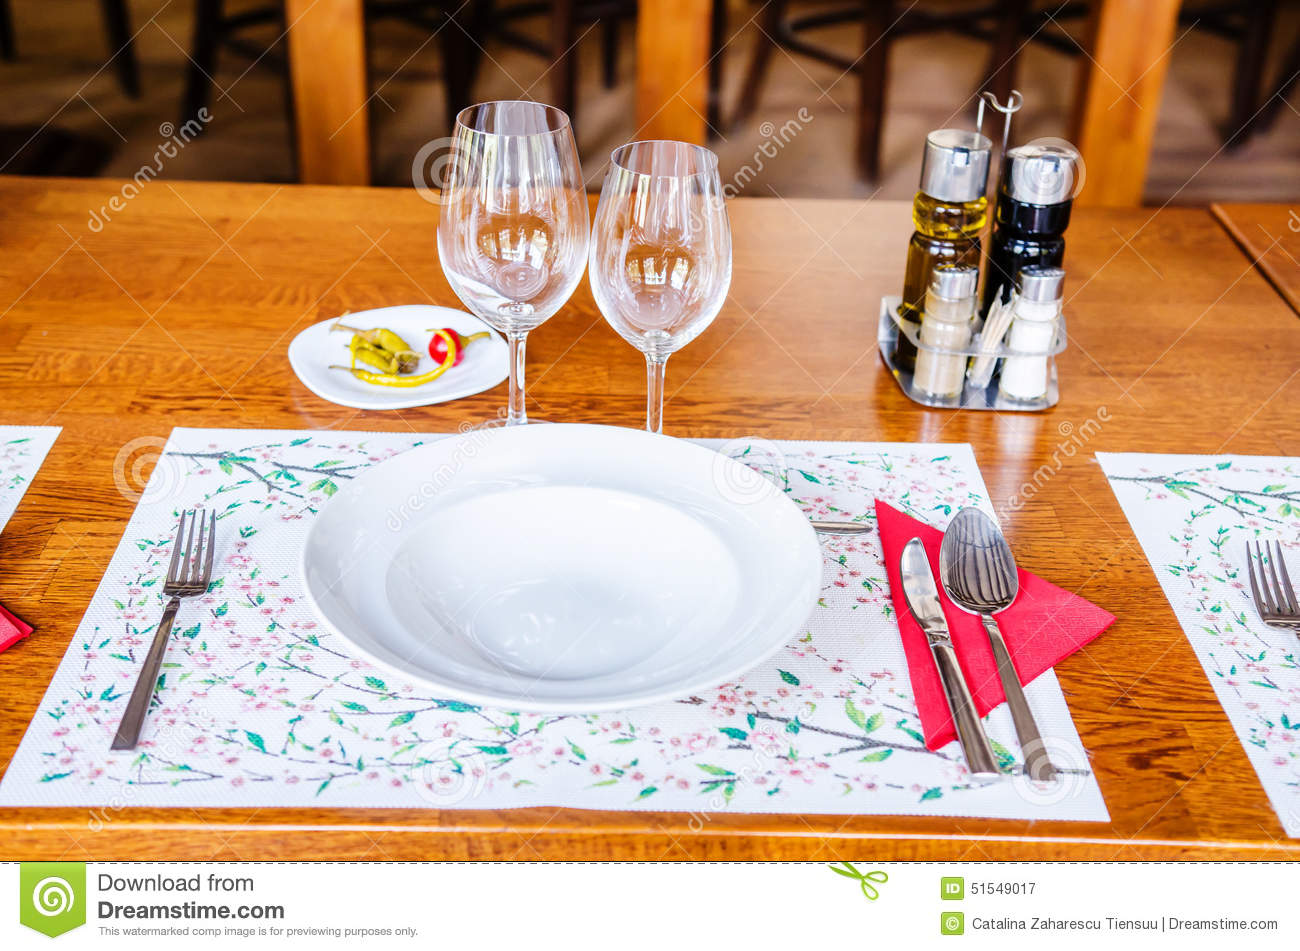 How to set up the Simple table setting for lunch